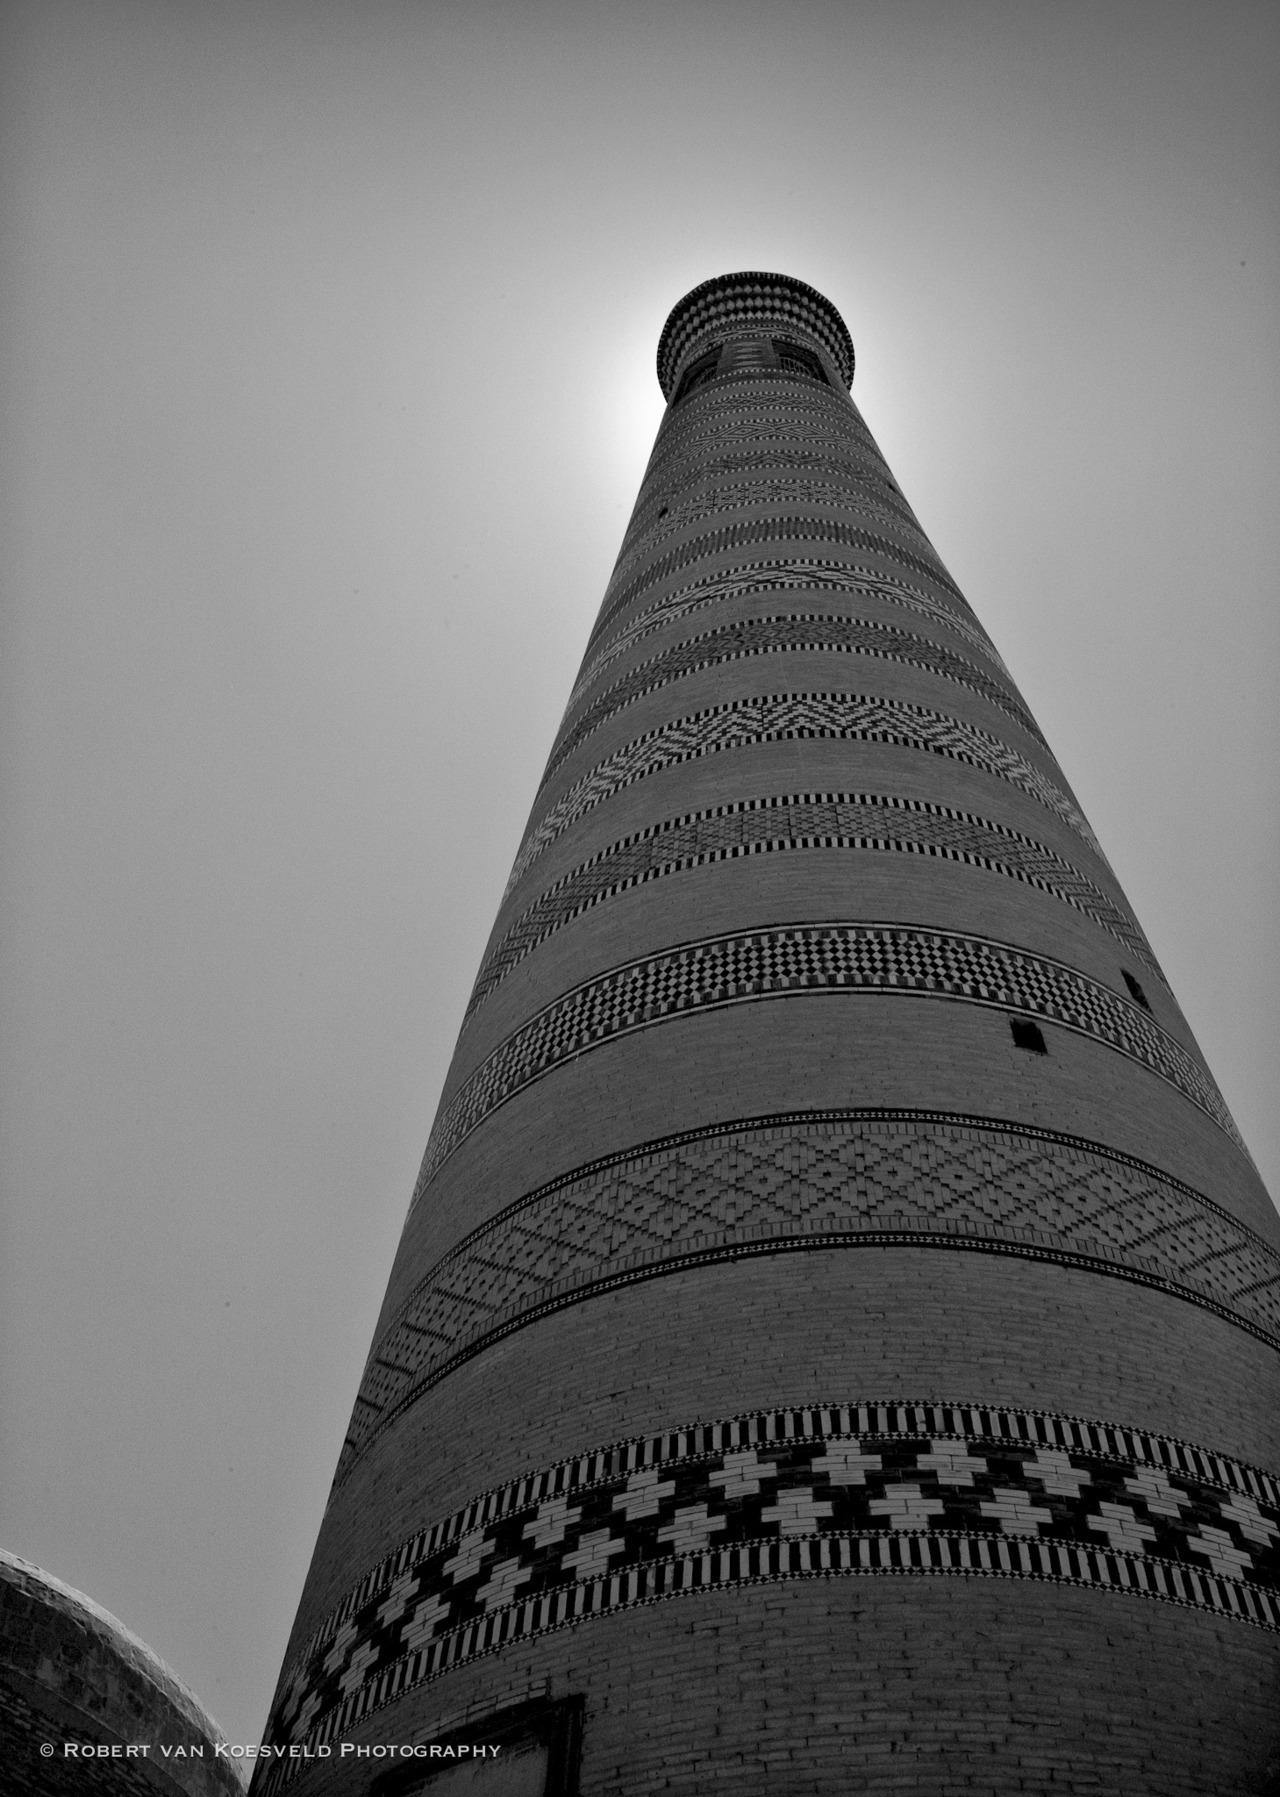 learningtosee:  Uzbekistan Light 02 Khiva I will be alternating portraits and cityscapes in this series. Series Link    (CC-BY-NC-ND)